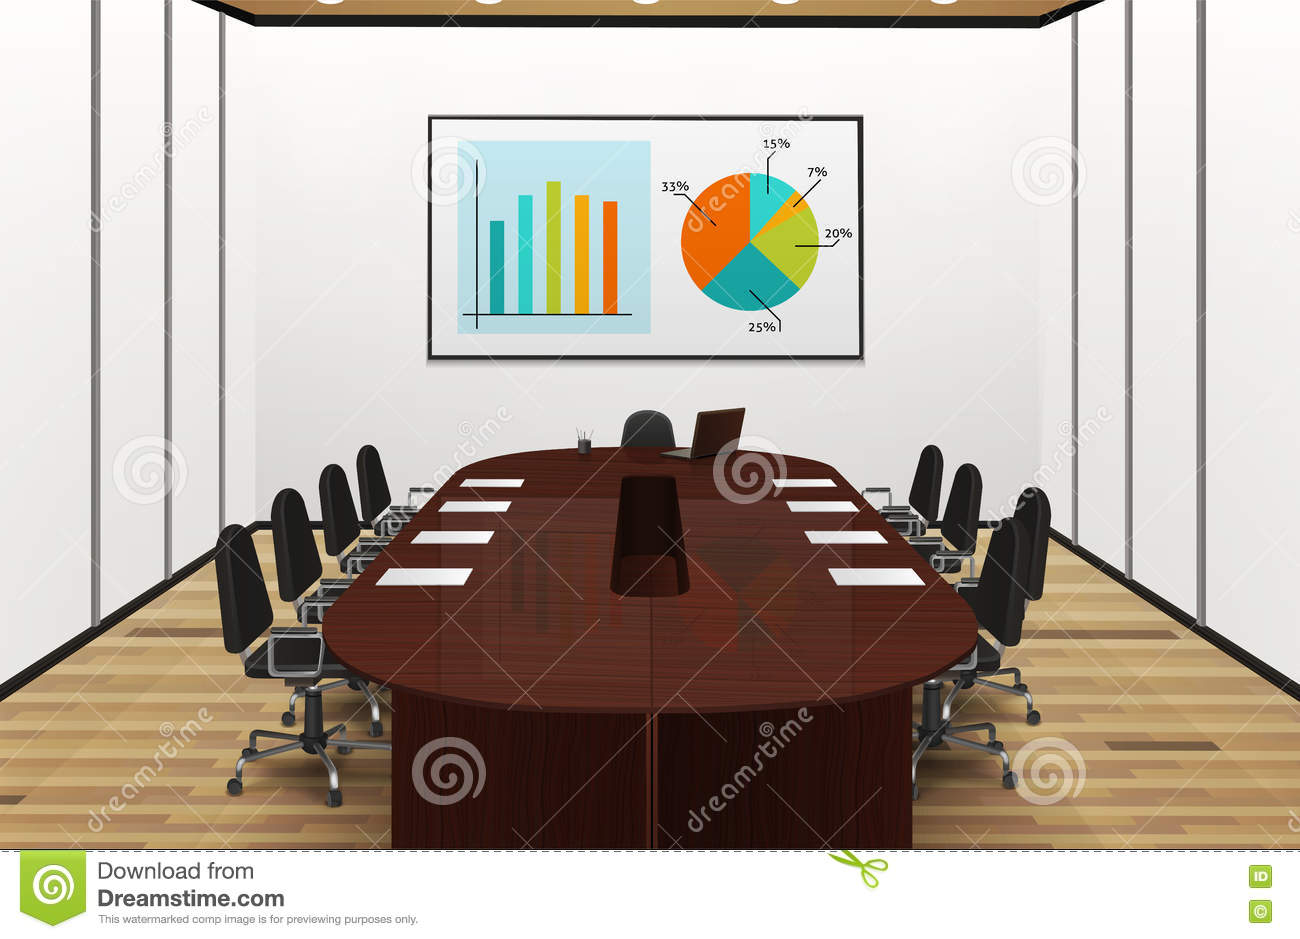 What Floor Is The Oval Office On Light Conference Room Royalty Free Stock Photo